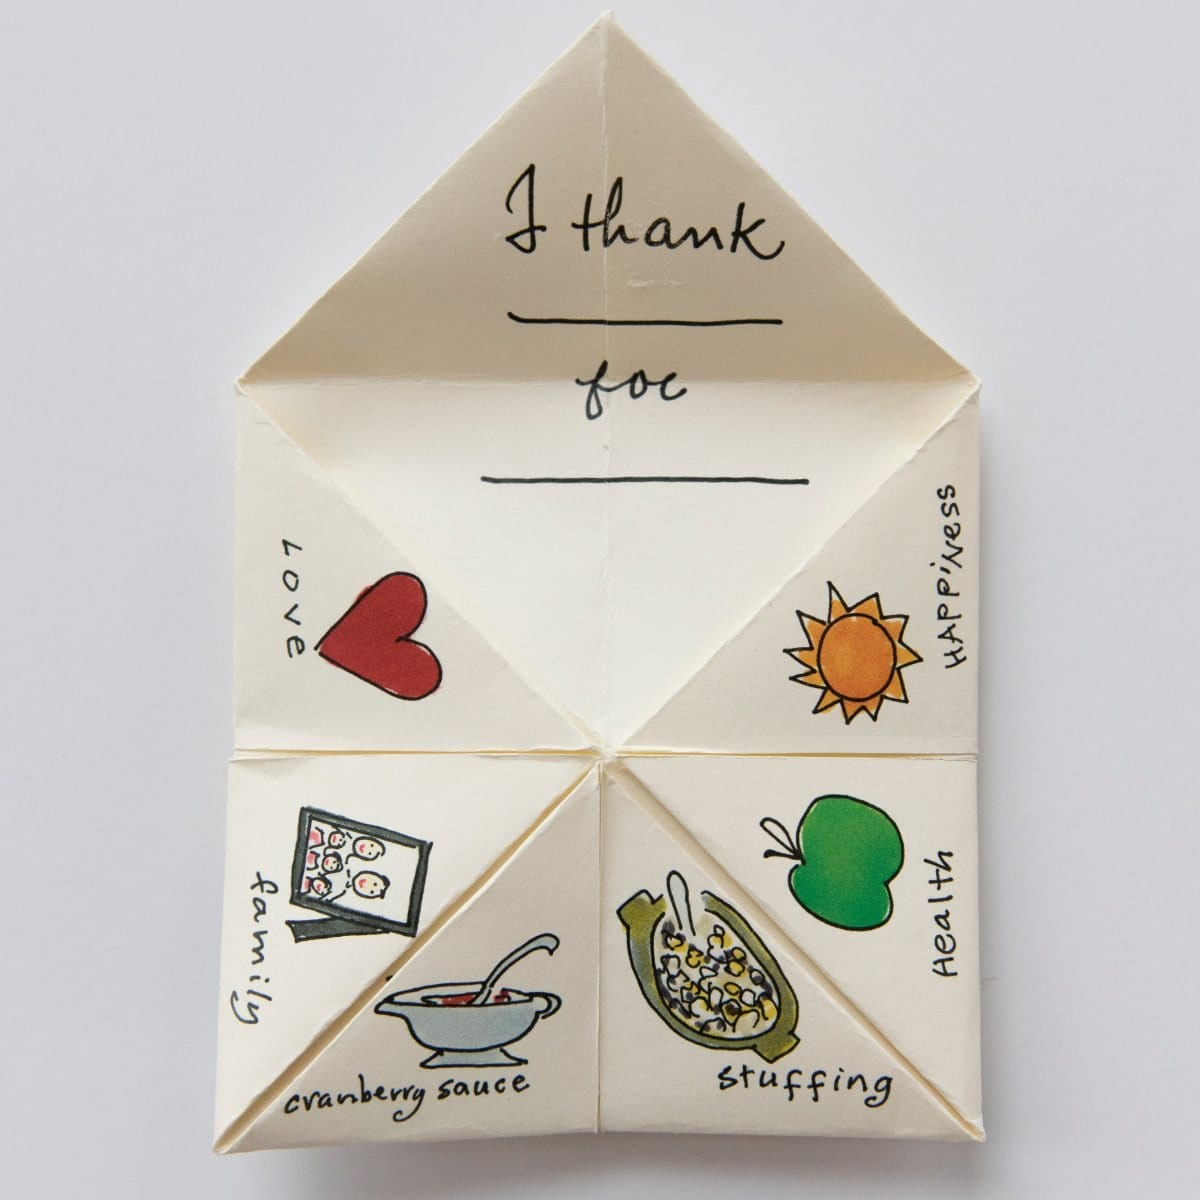 Thanksgiving cootie catcher darcy miller designs what youll need cootie catcher template paper maxwellsz